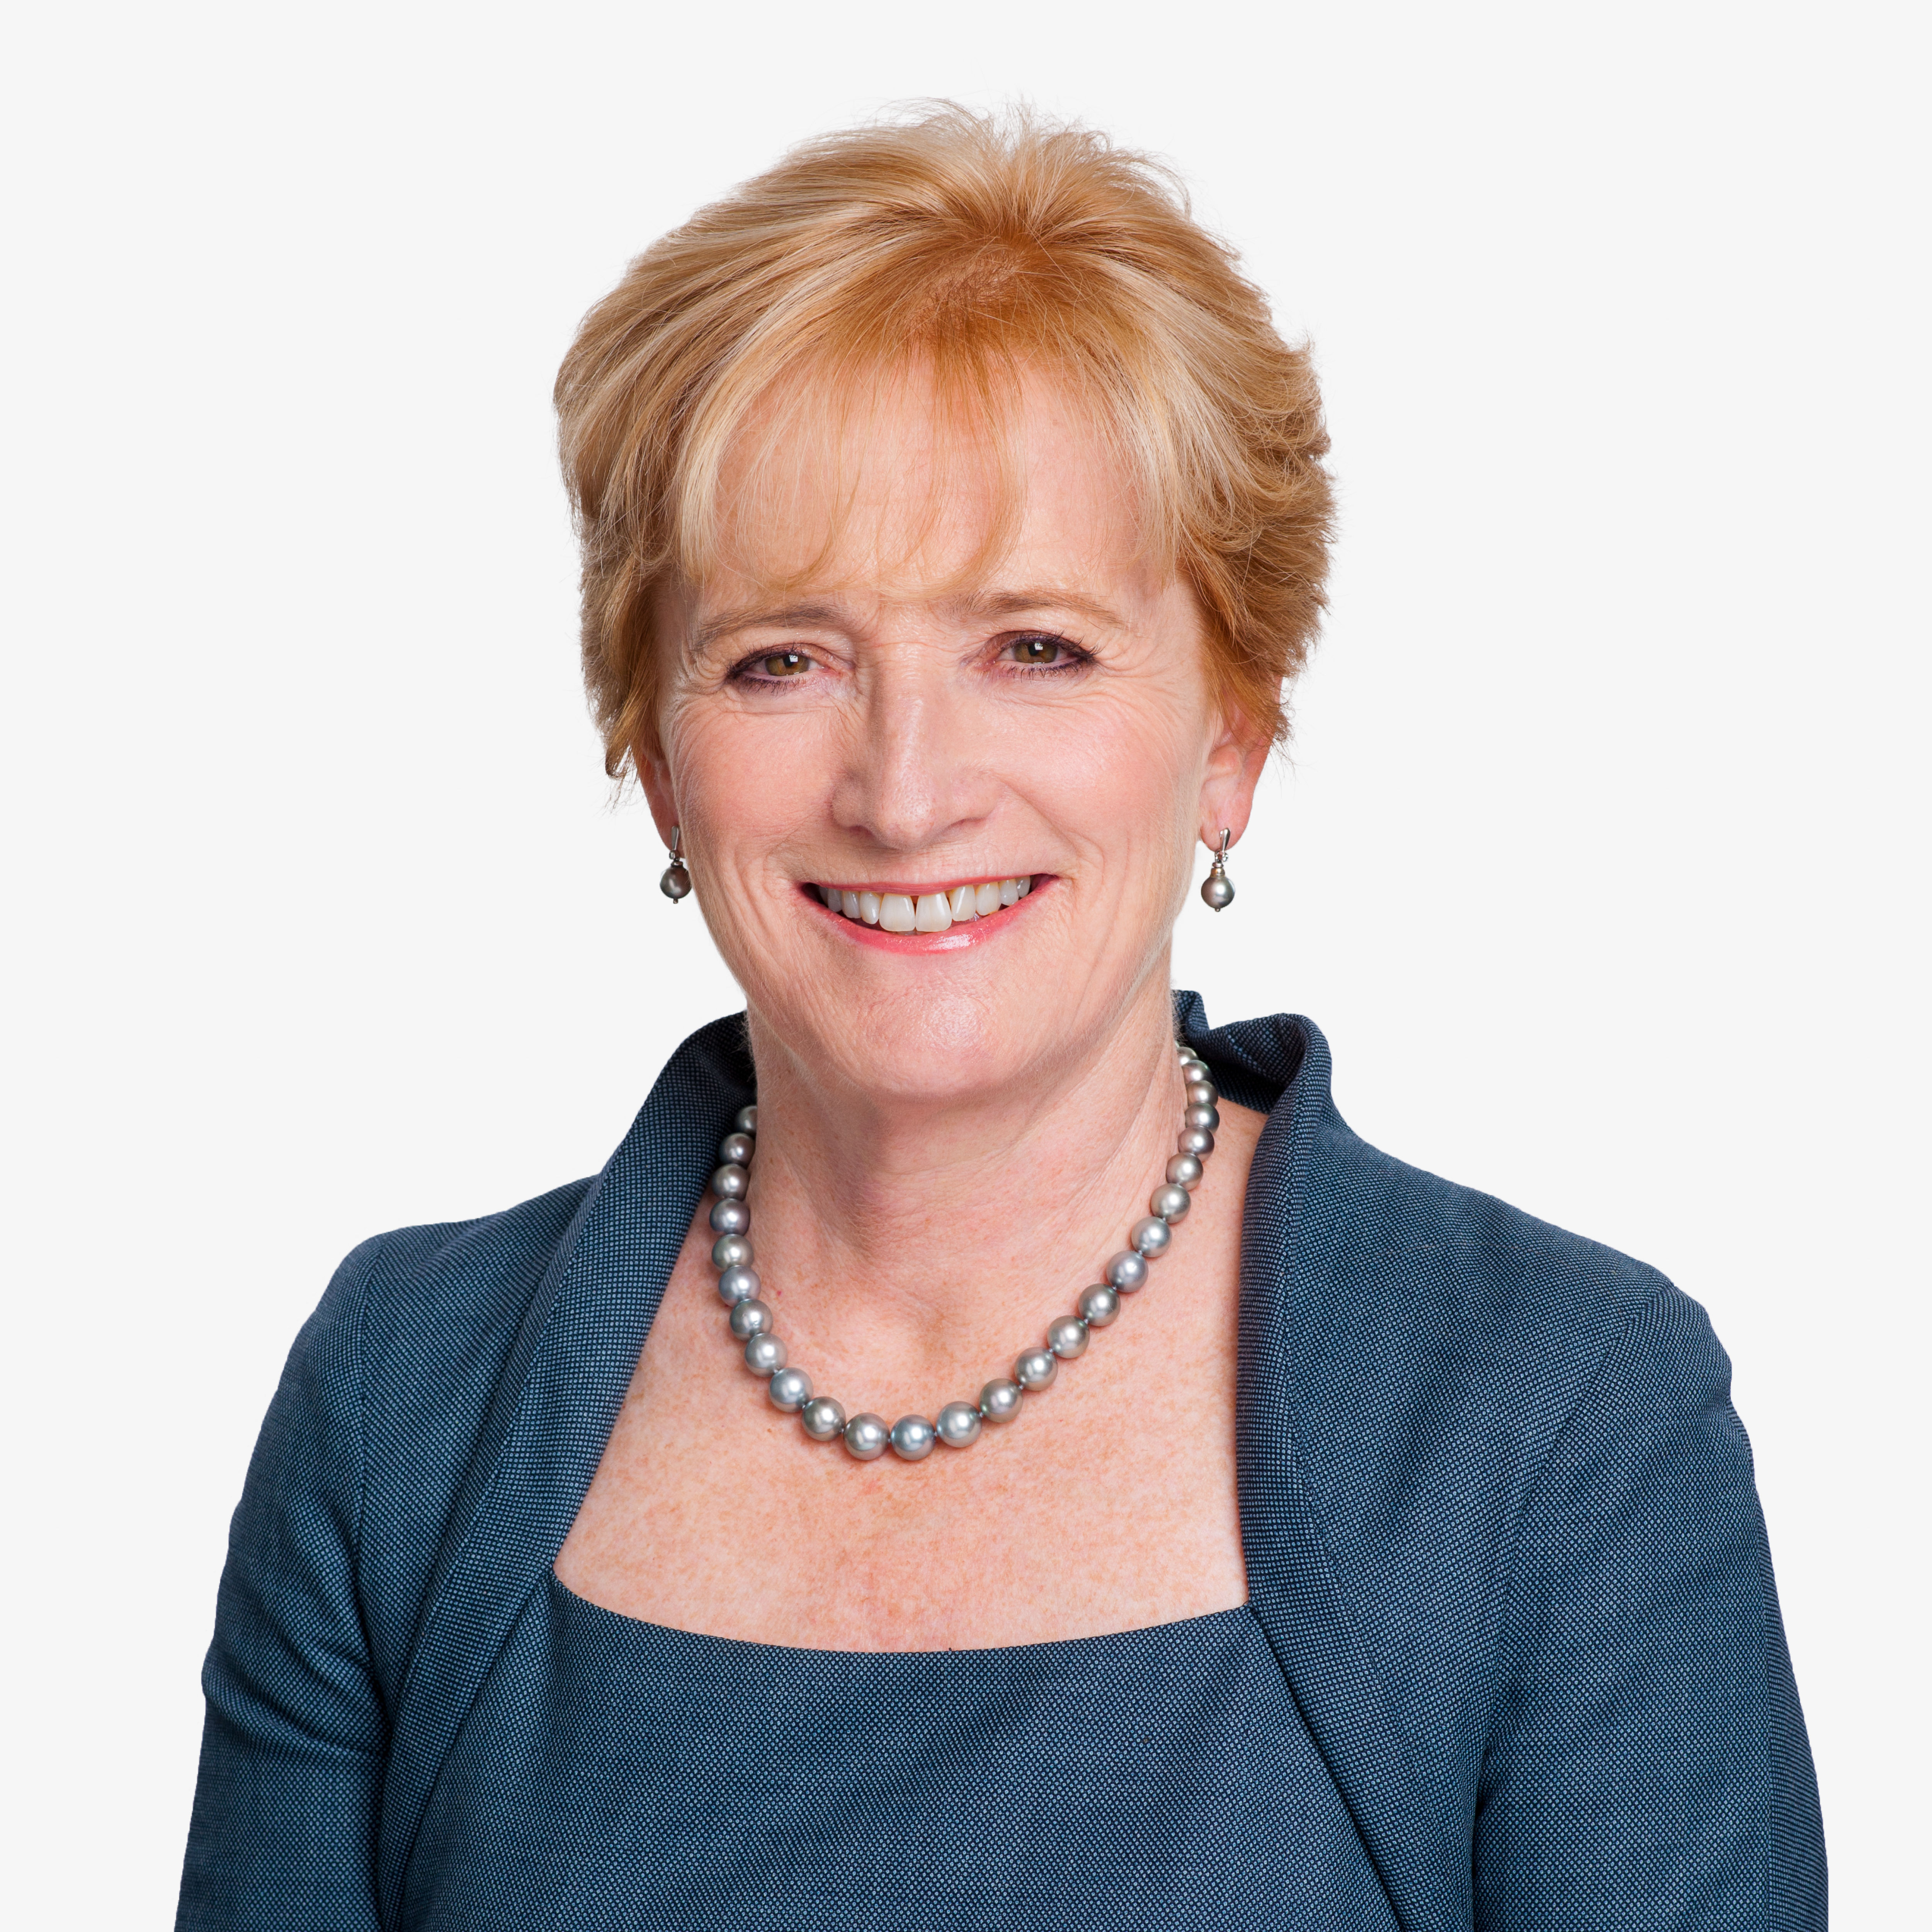 Clare Maurice